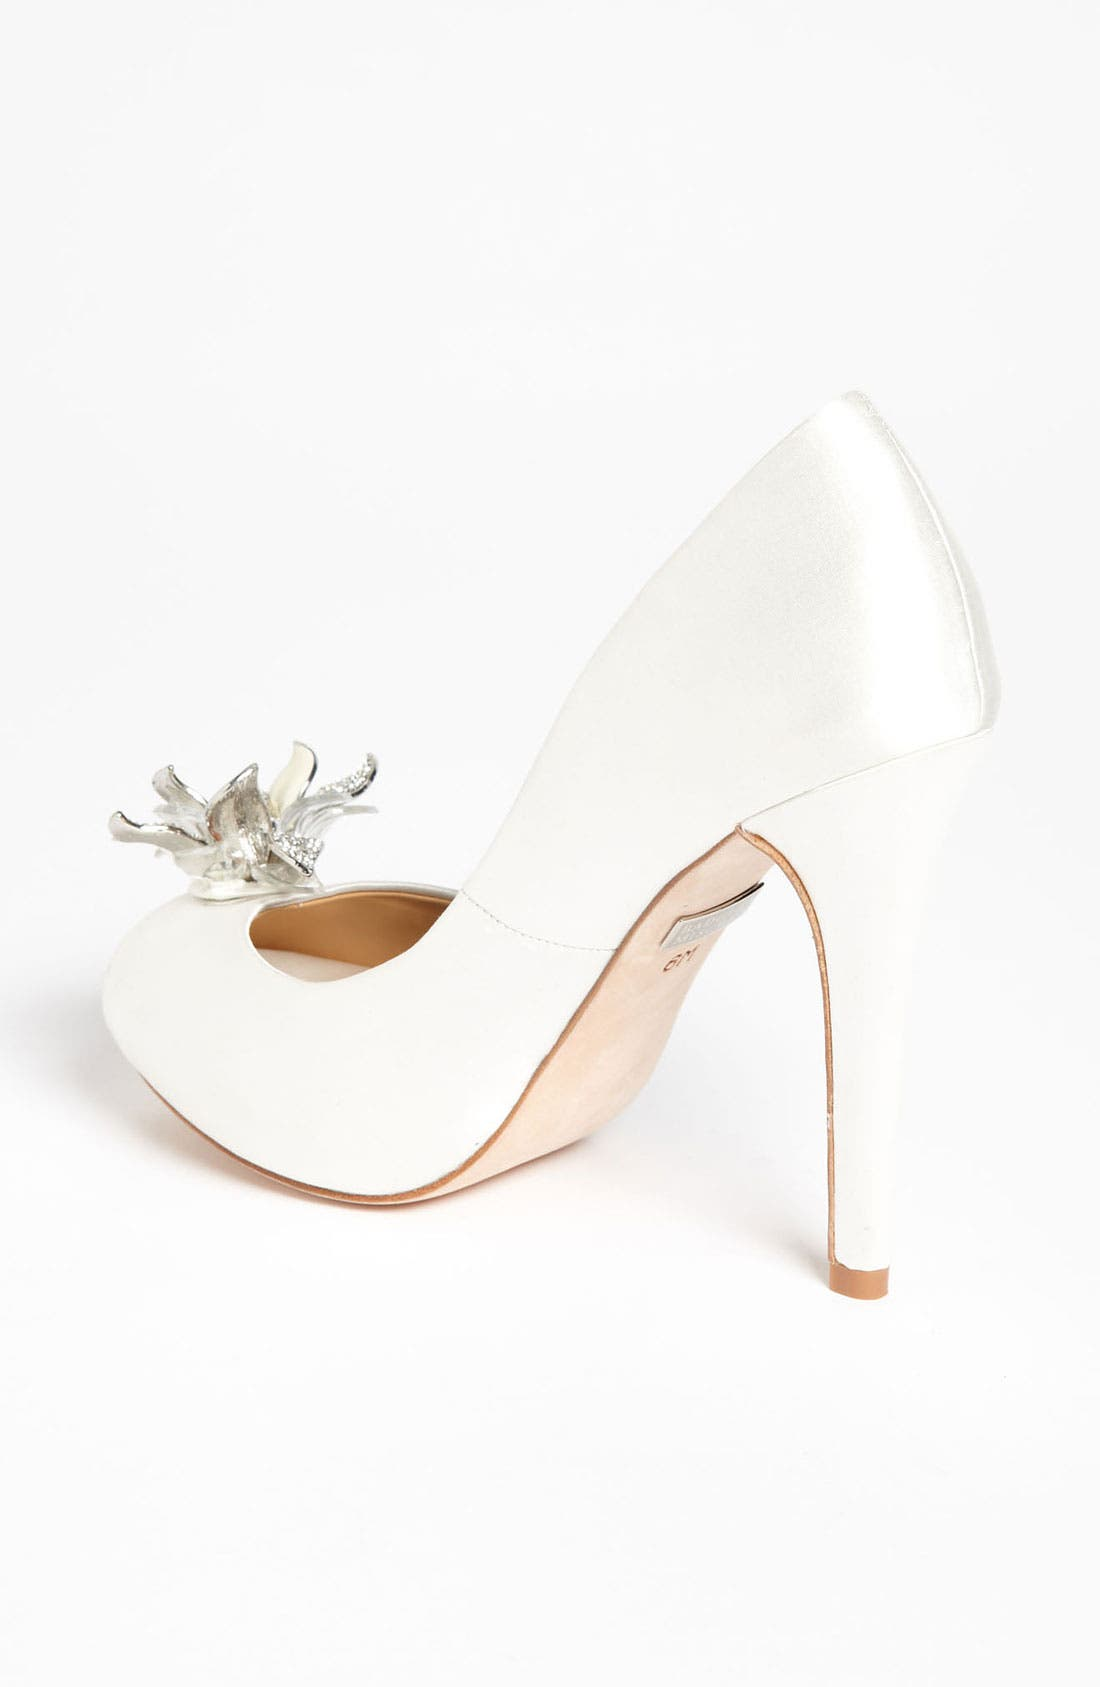 BADGLEY MISCHKA COLLECTION, Badgley Mischka 'Cleone' Pump, Alternate thumbnail 4, color, 142